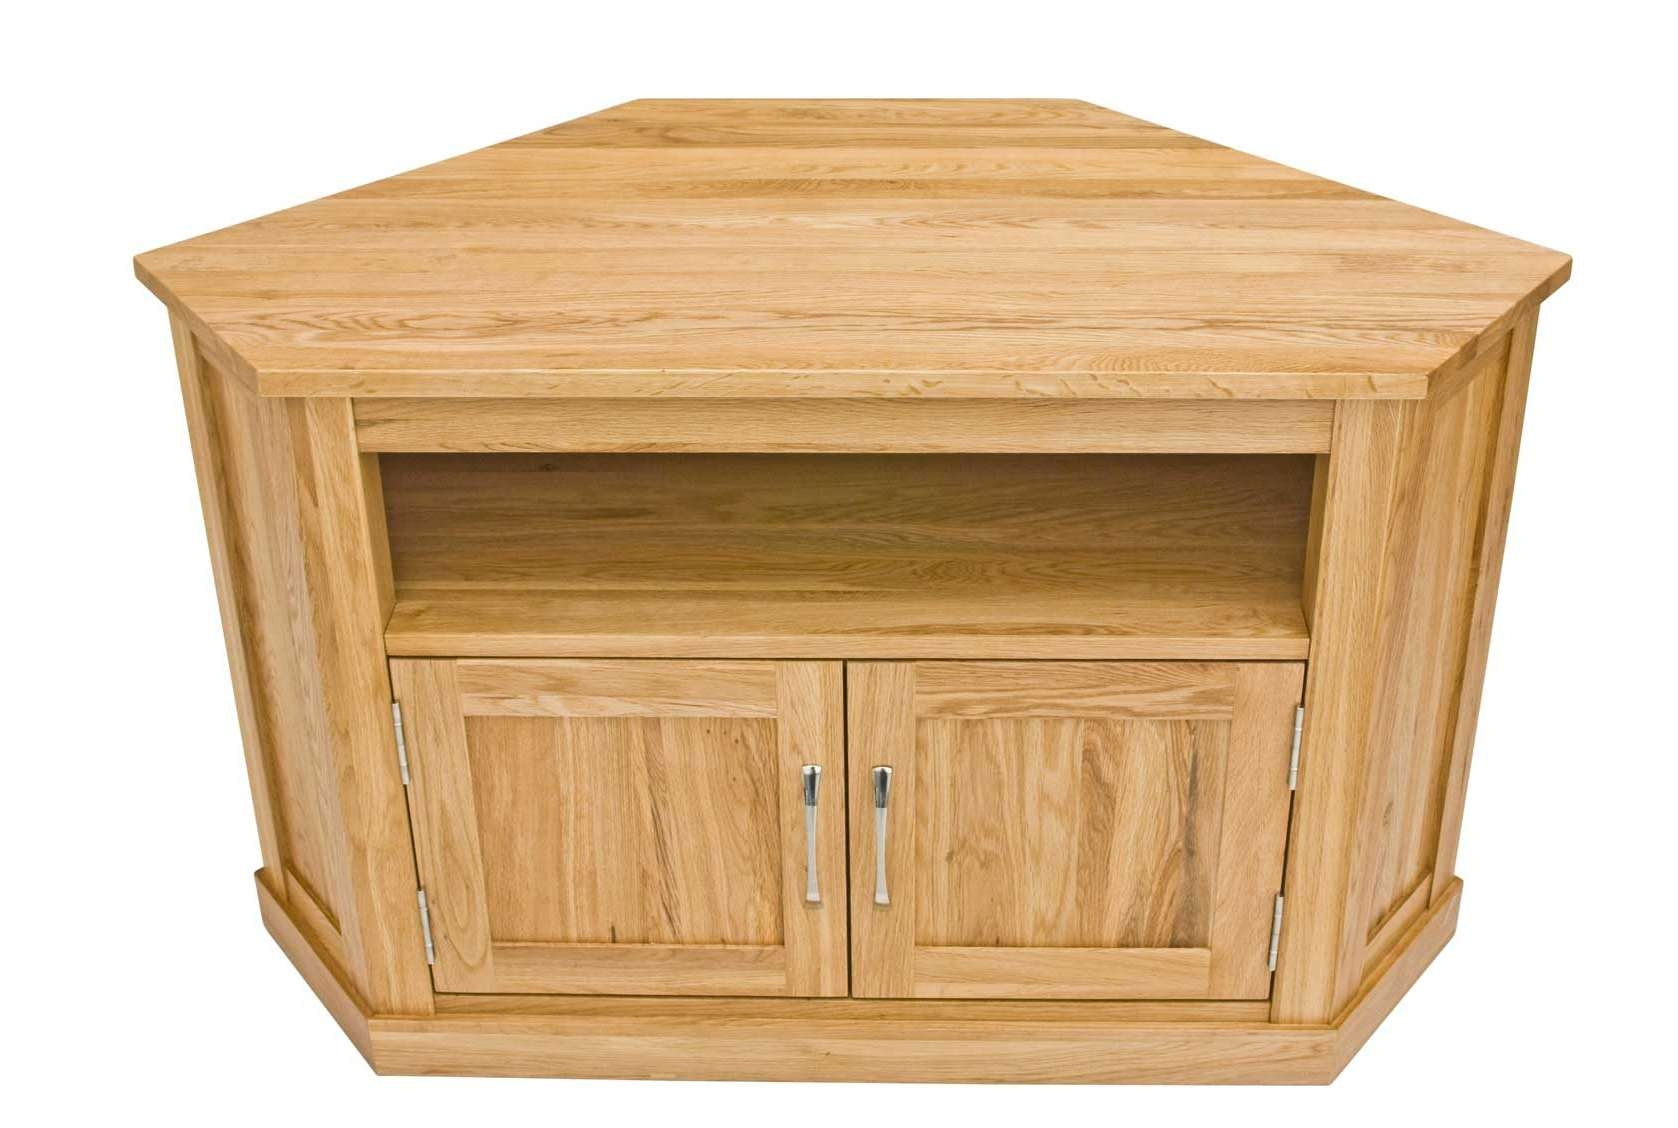 Classic Oak Corner Television Cabinet | Hampshire Furniture With Solid Wood Corner Tv Cabinets (View 2 of 20)